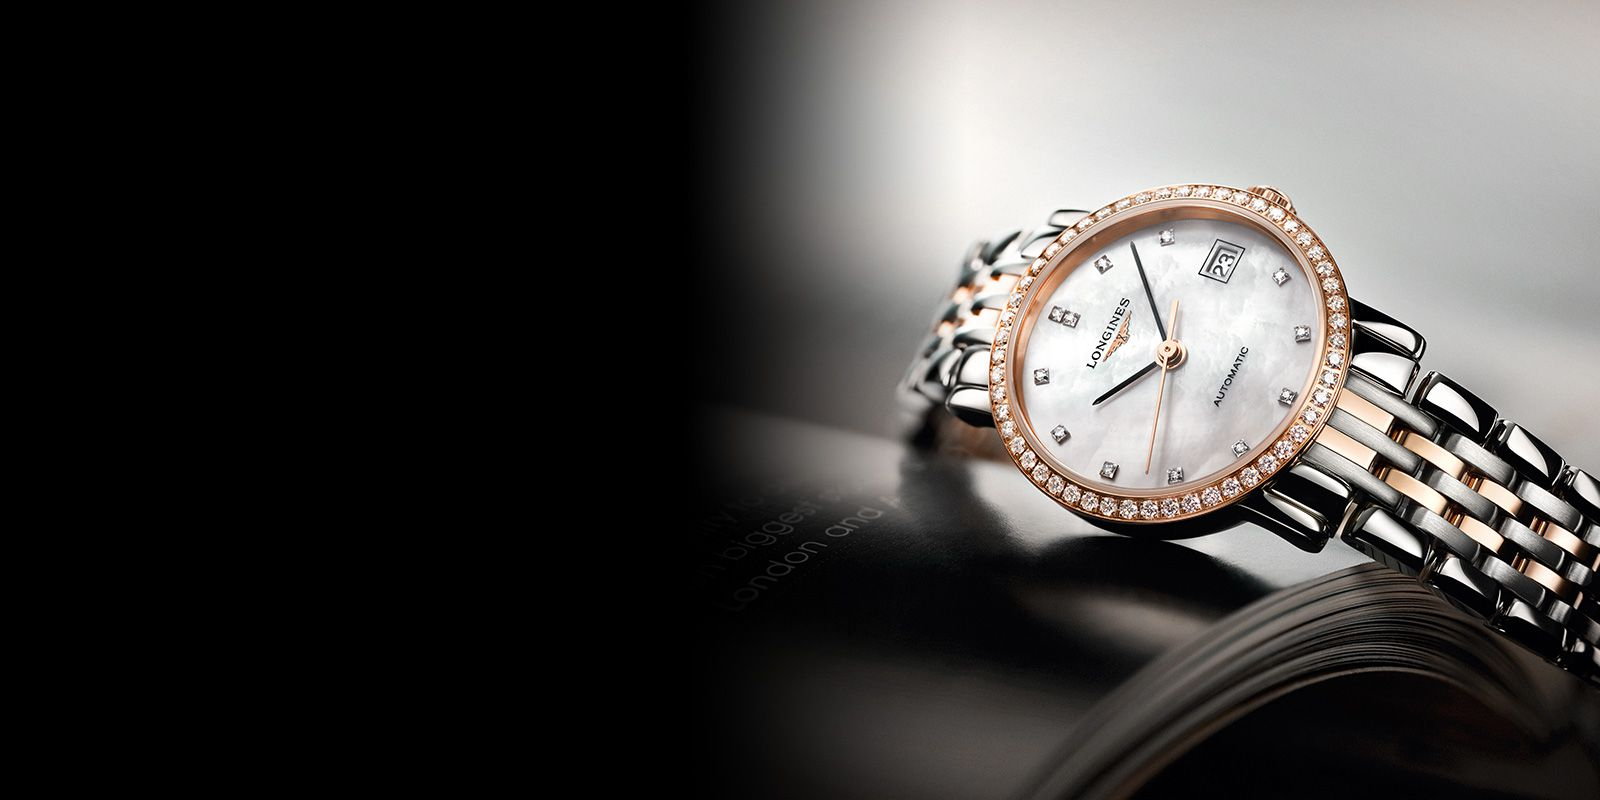 aa1eb06a25c Longines® Elegant Collection: Watches born of Tradition | Longines®